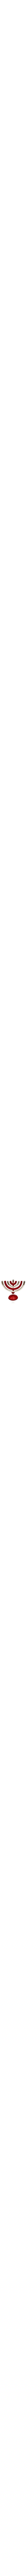 CLASSIC MENORAH FOR HANUKKAH